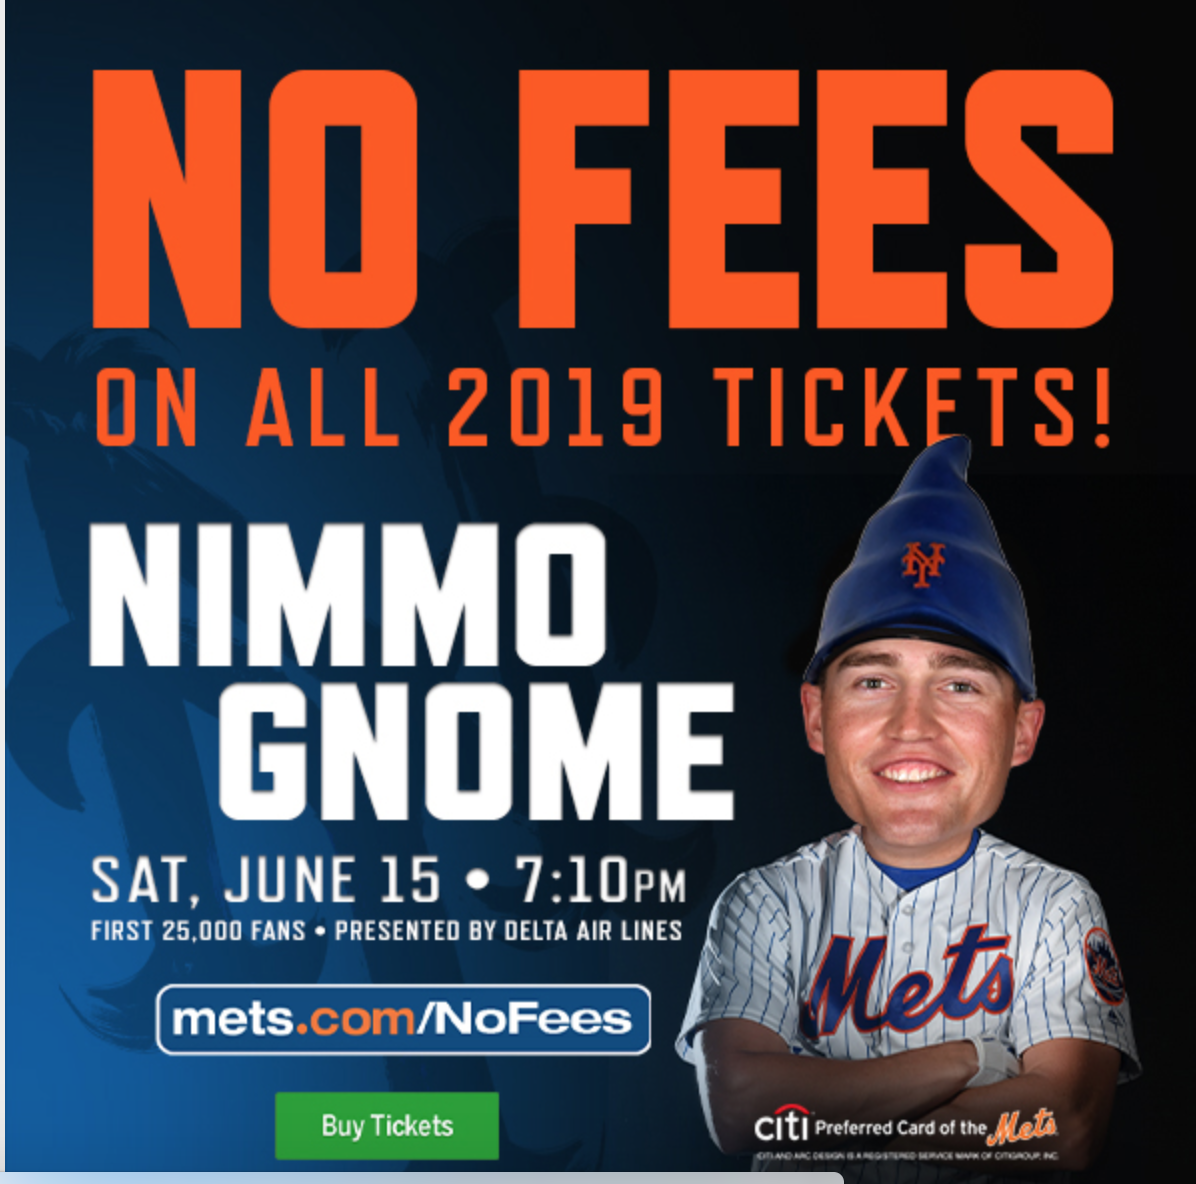 TheMediagoon com: Nimmo becomes GNimmo with his own Gnome